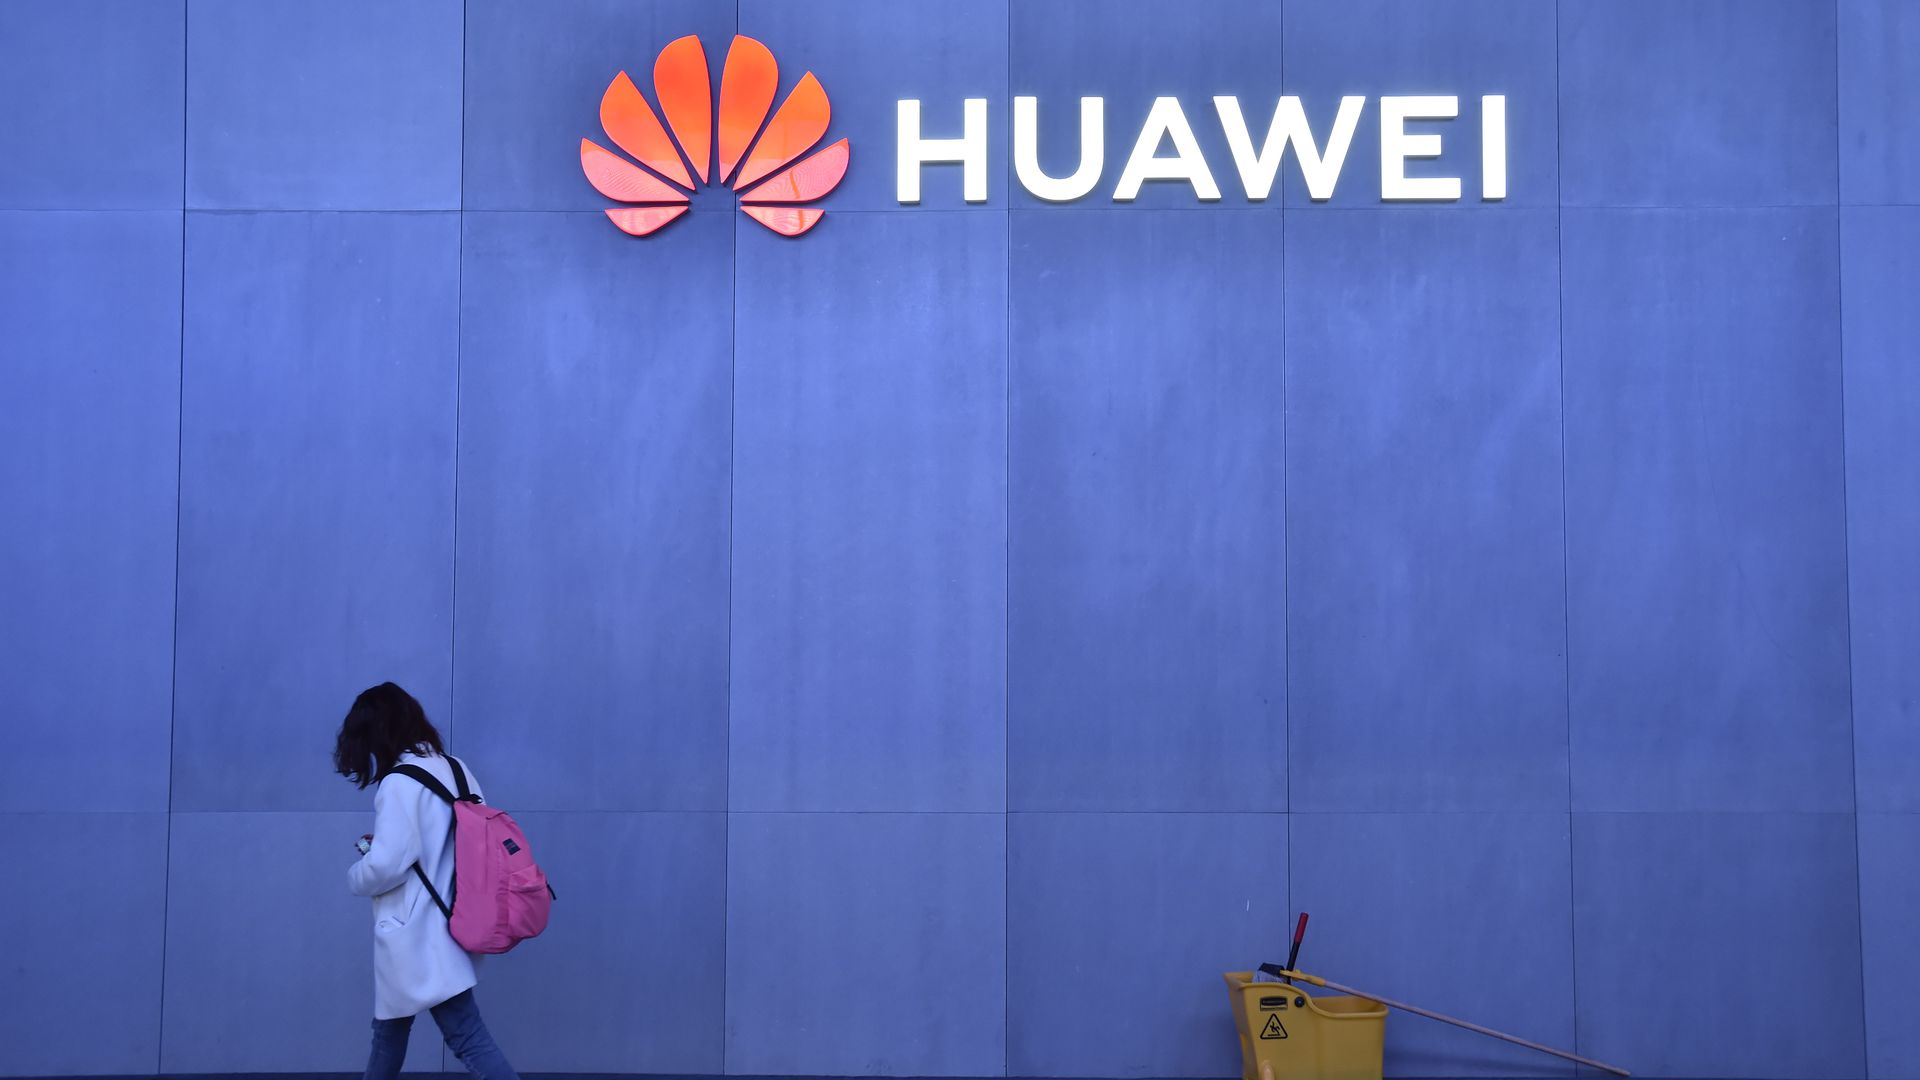 "A blue wall with a neon sign that says ""Huawei."" There is a young person wearing a backpack walking in front of the wall."